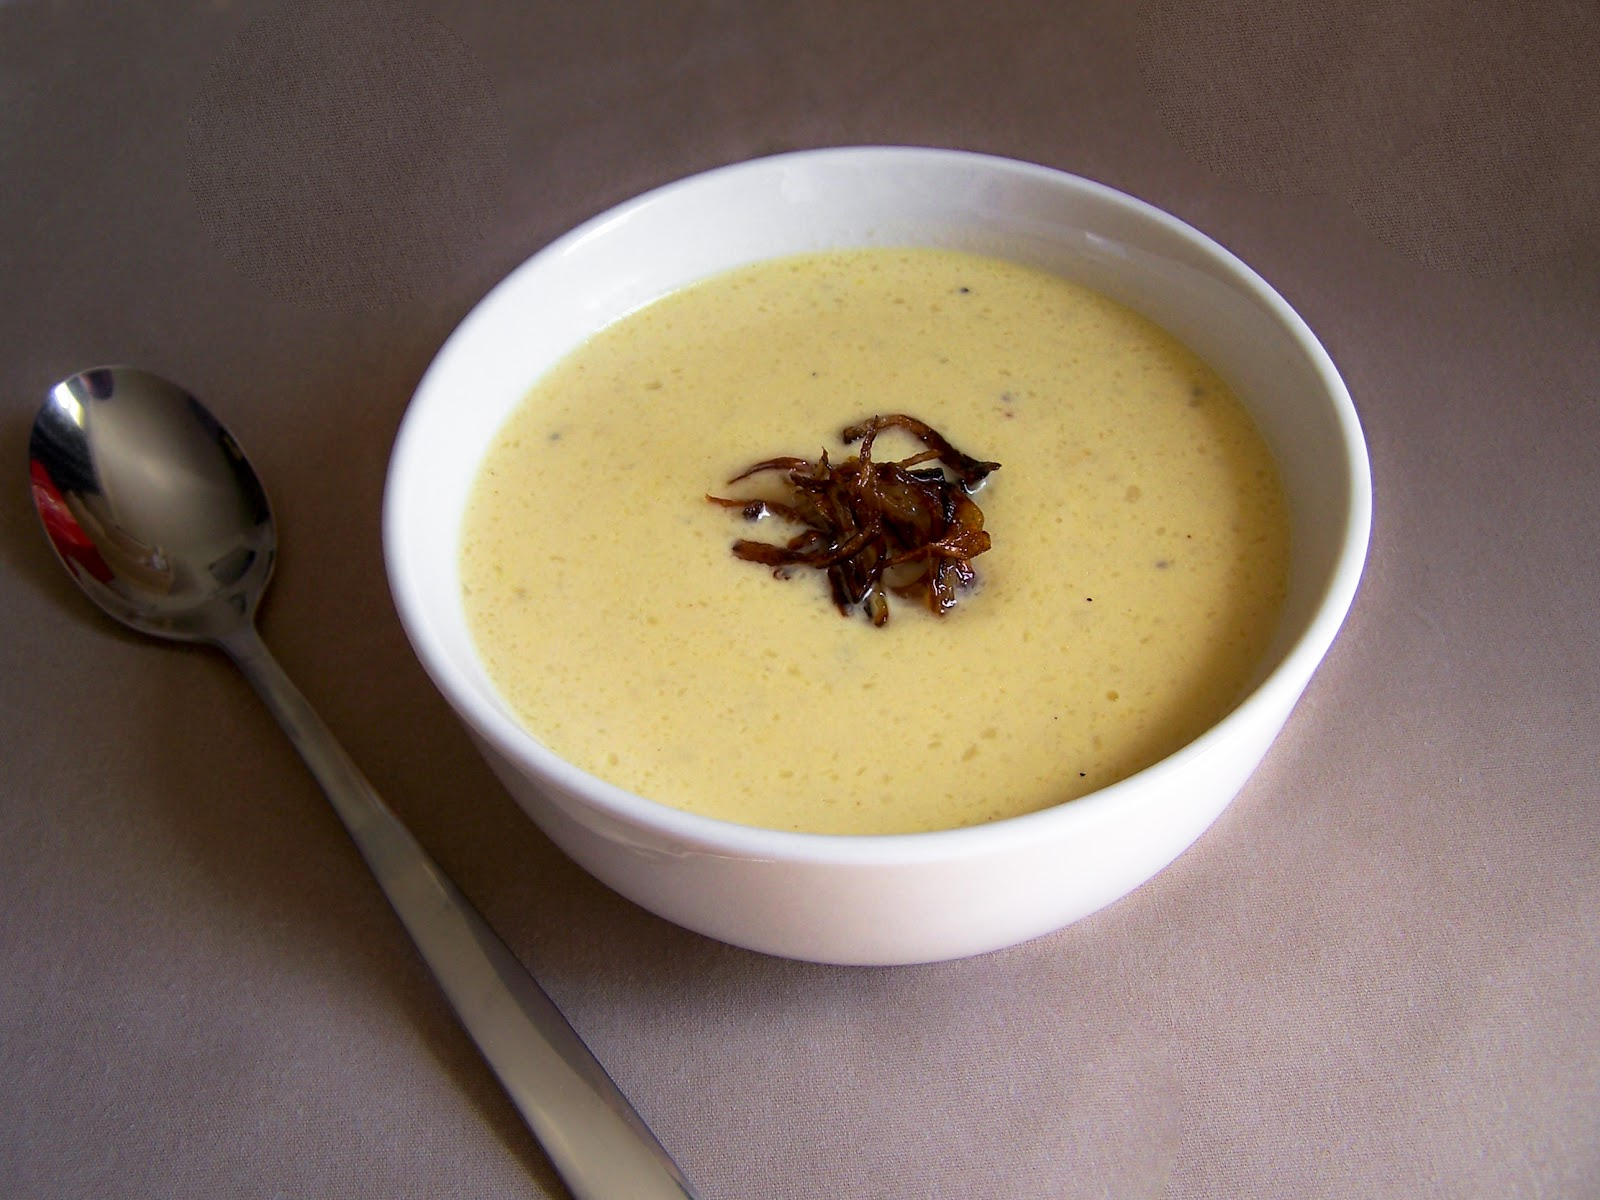 KitchenLab: Creamy Cauliflower Cheese Soup with Pan-fried Shallots